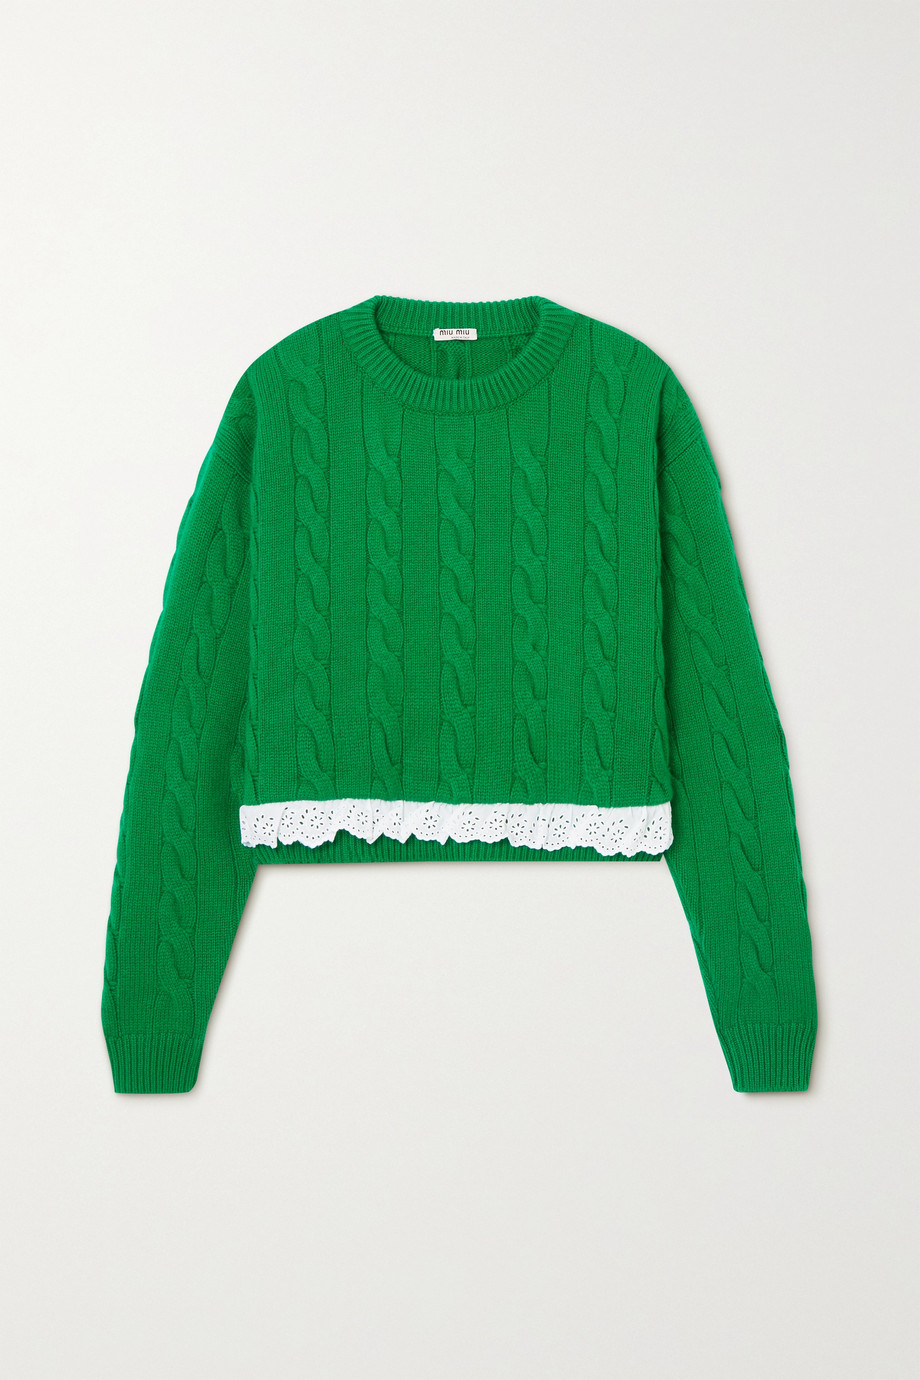 Miu Miu Cropped broderie anglaise-trimmed cable-knit cashmere sweater